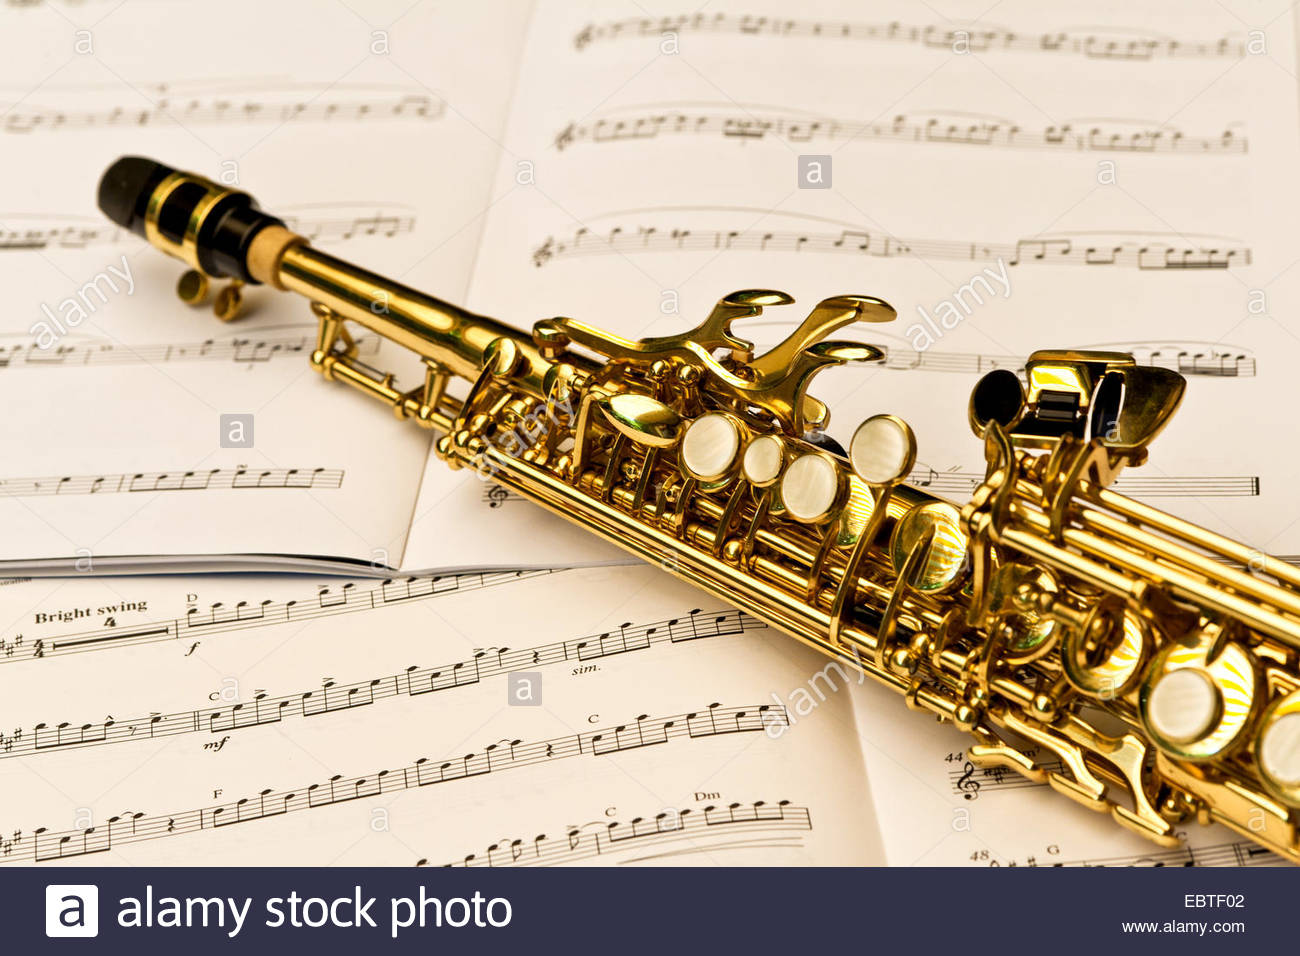 close-up-di-un-sassofono-soprano-e-note-musicali-ebtf02